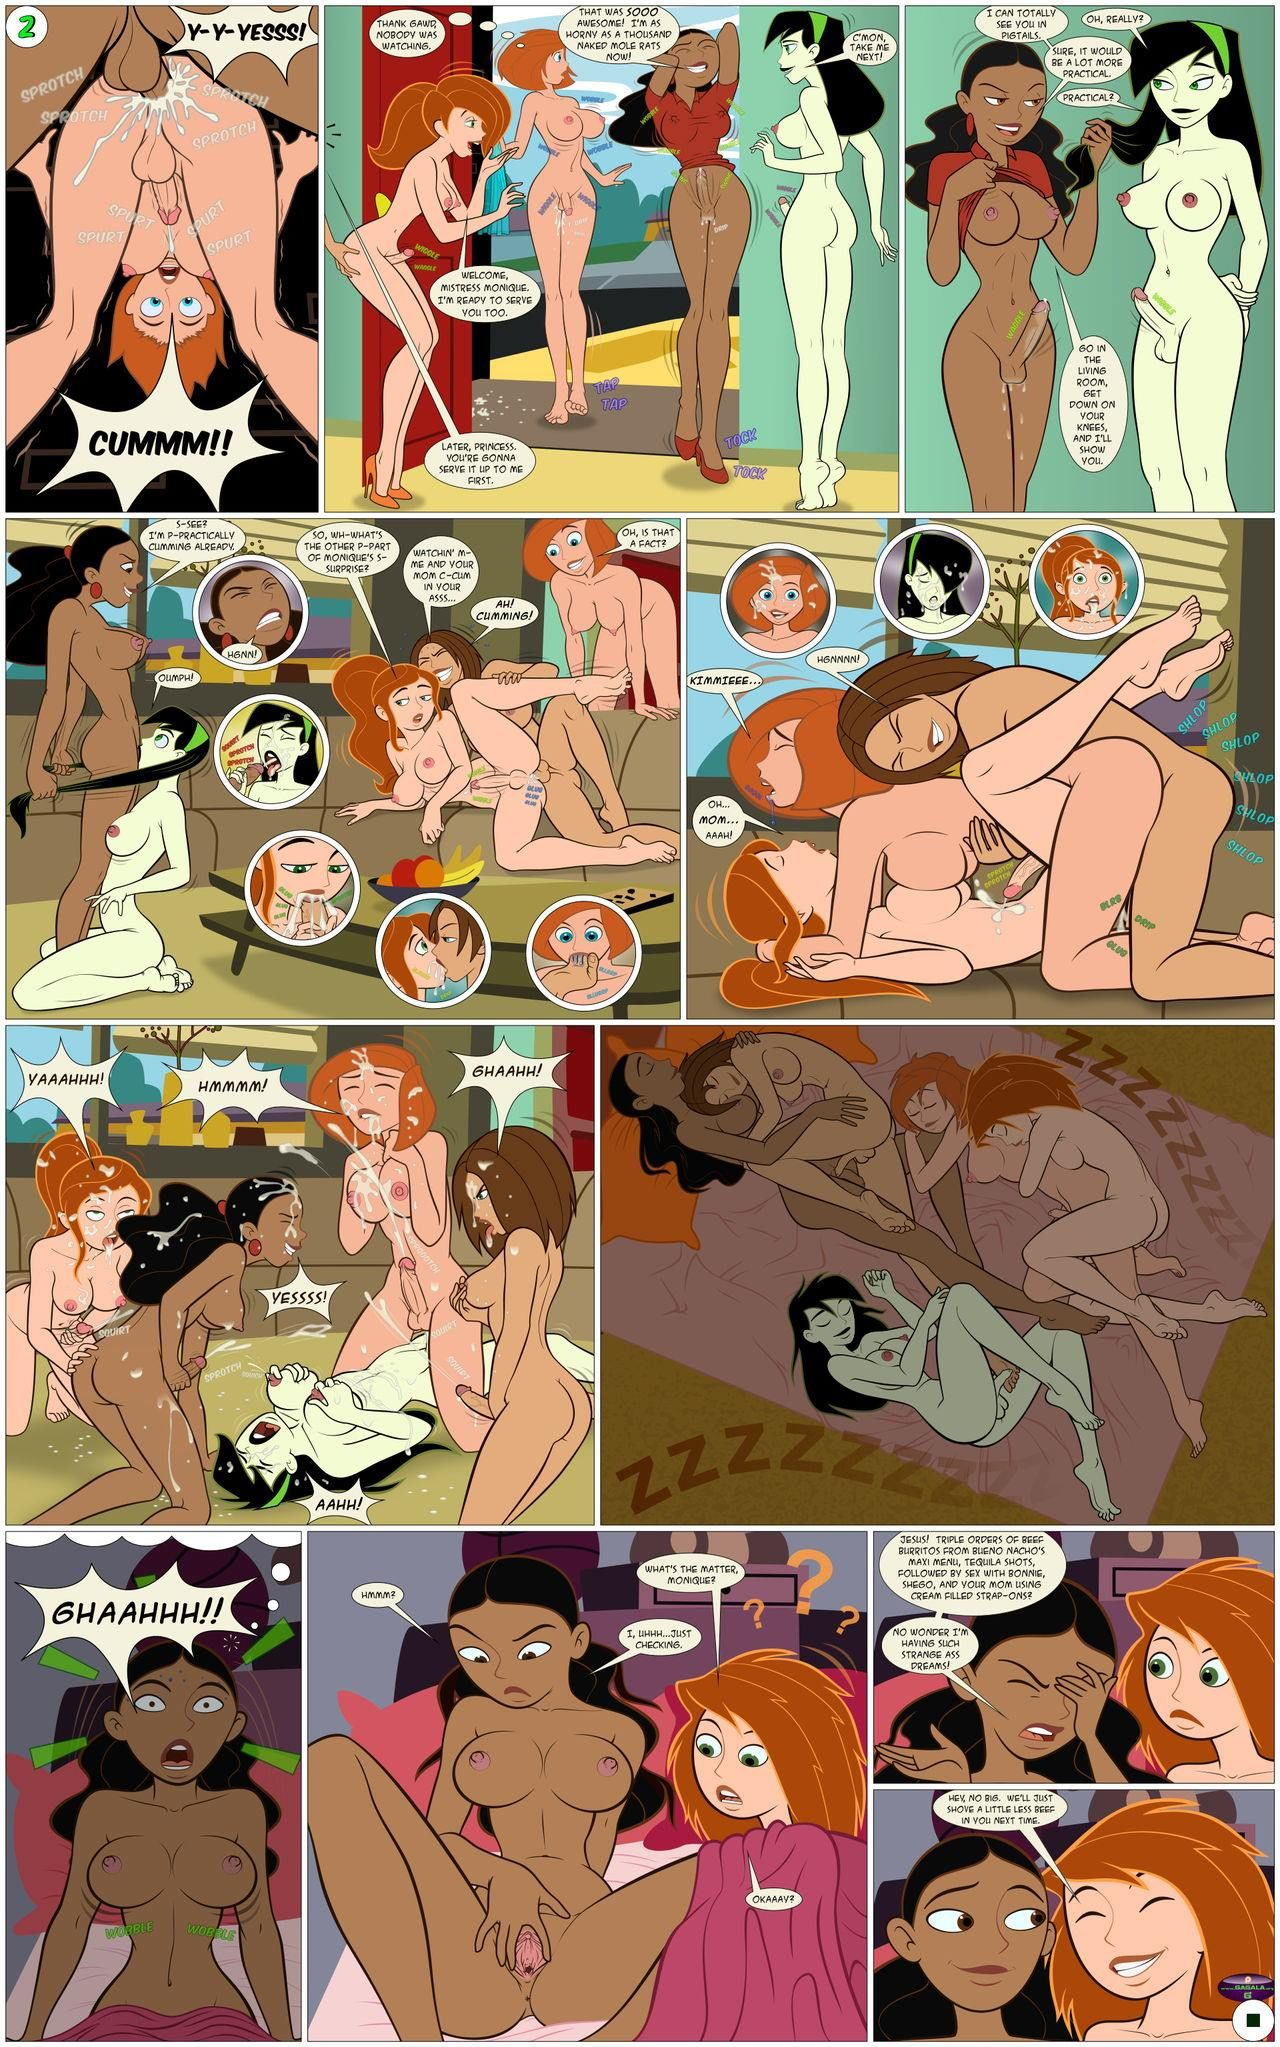 Free disney porn comic, wills trusts homosexual couples